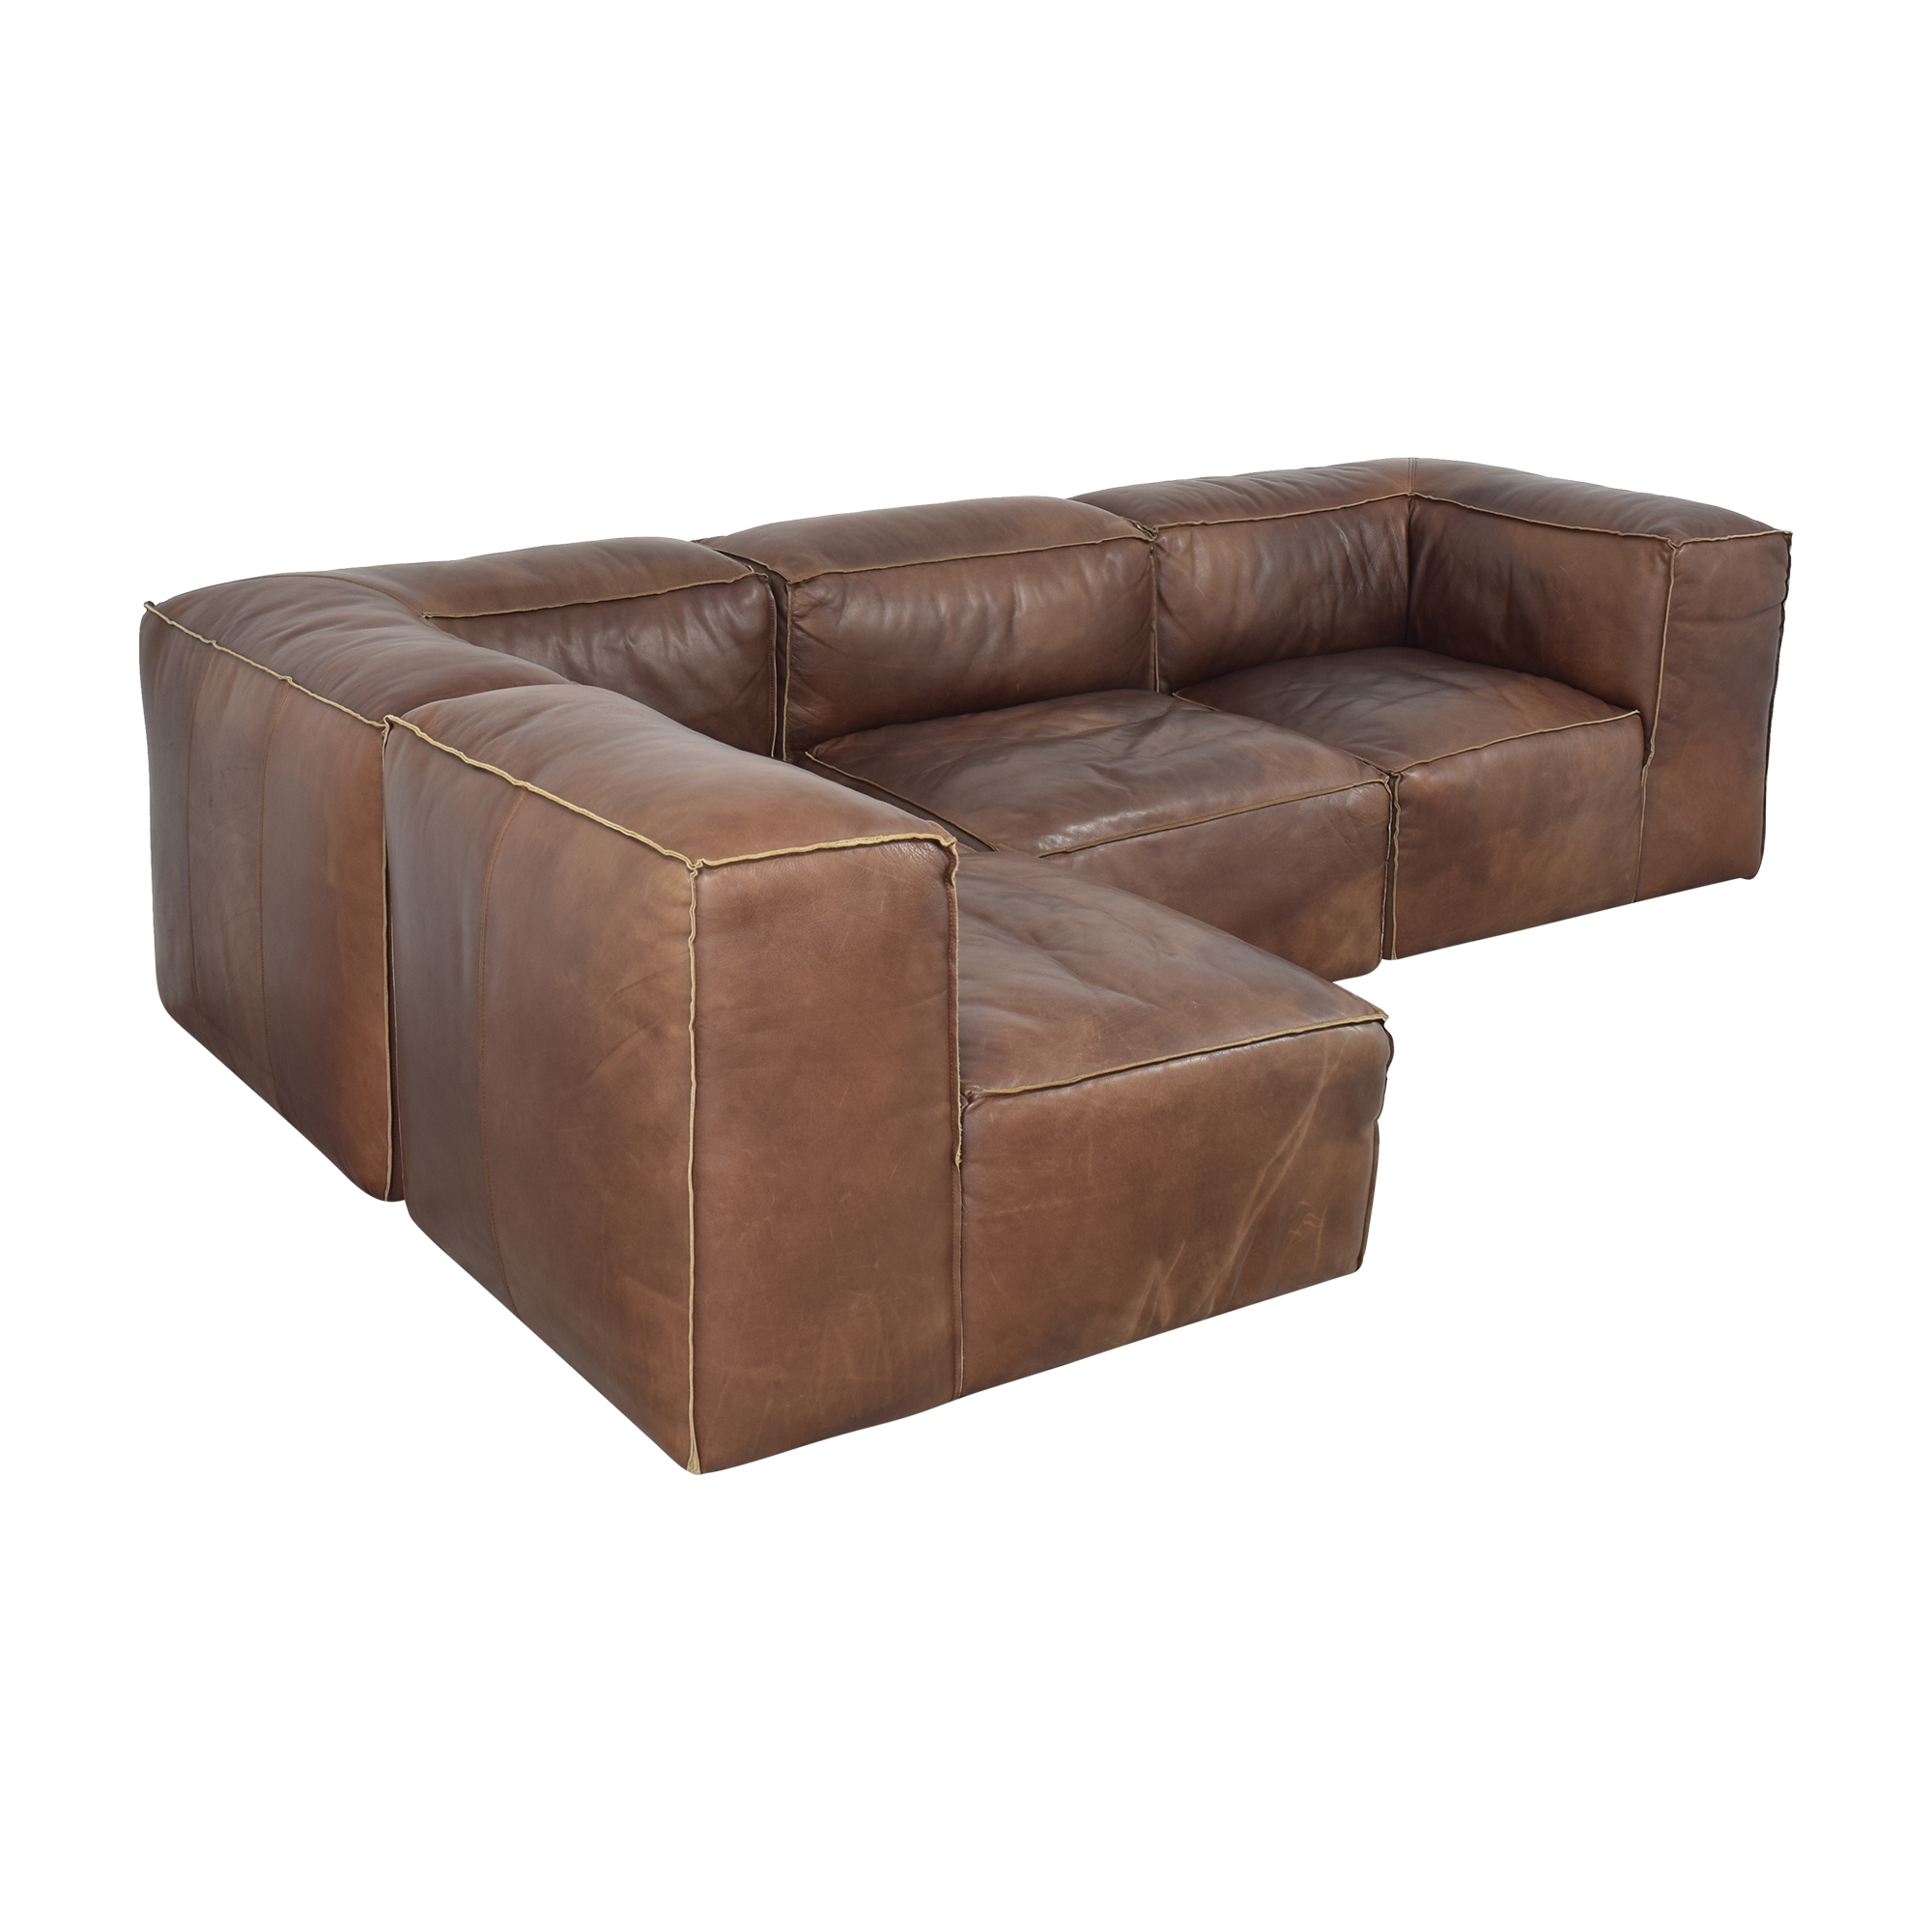 Restoration Hardware Restoration Hardware Fulham Sectional ct